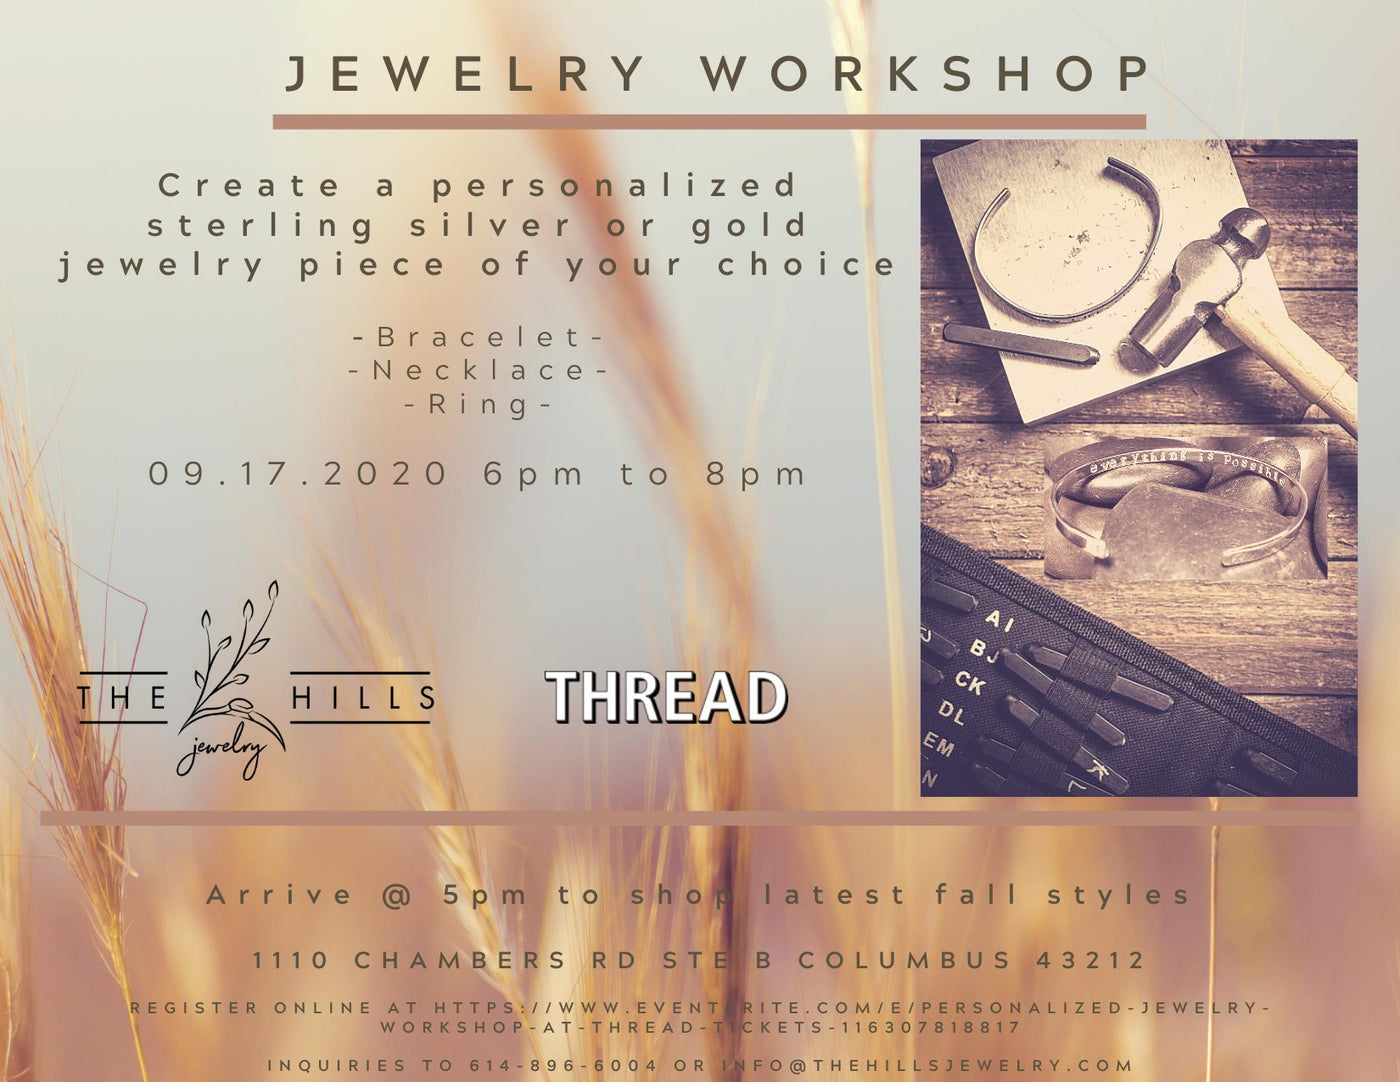 Personalized Jewelry Workshop at THREAD